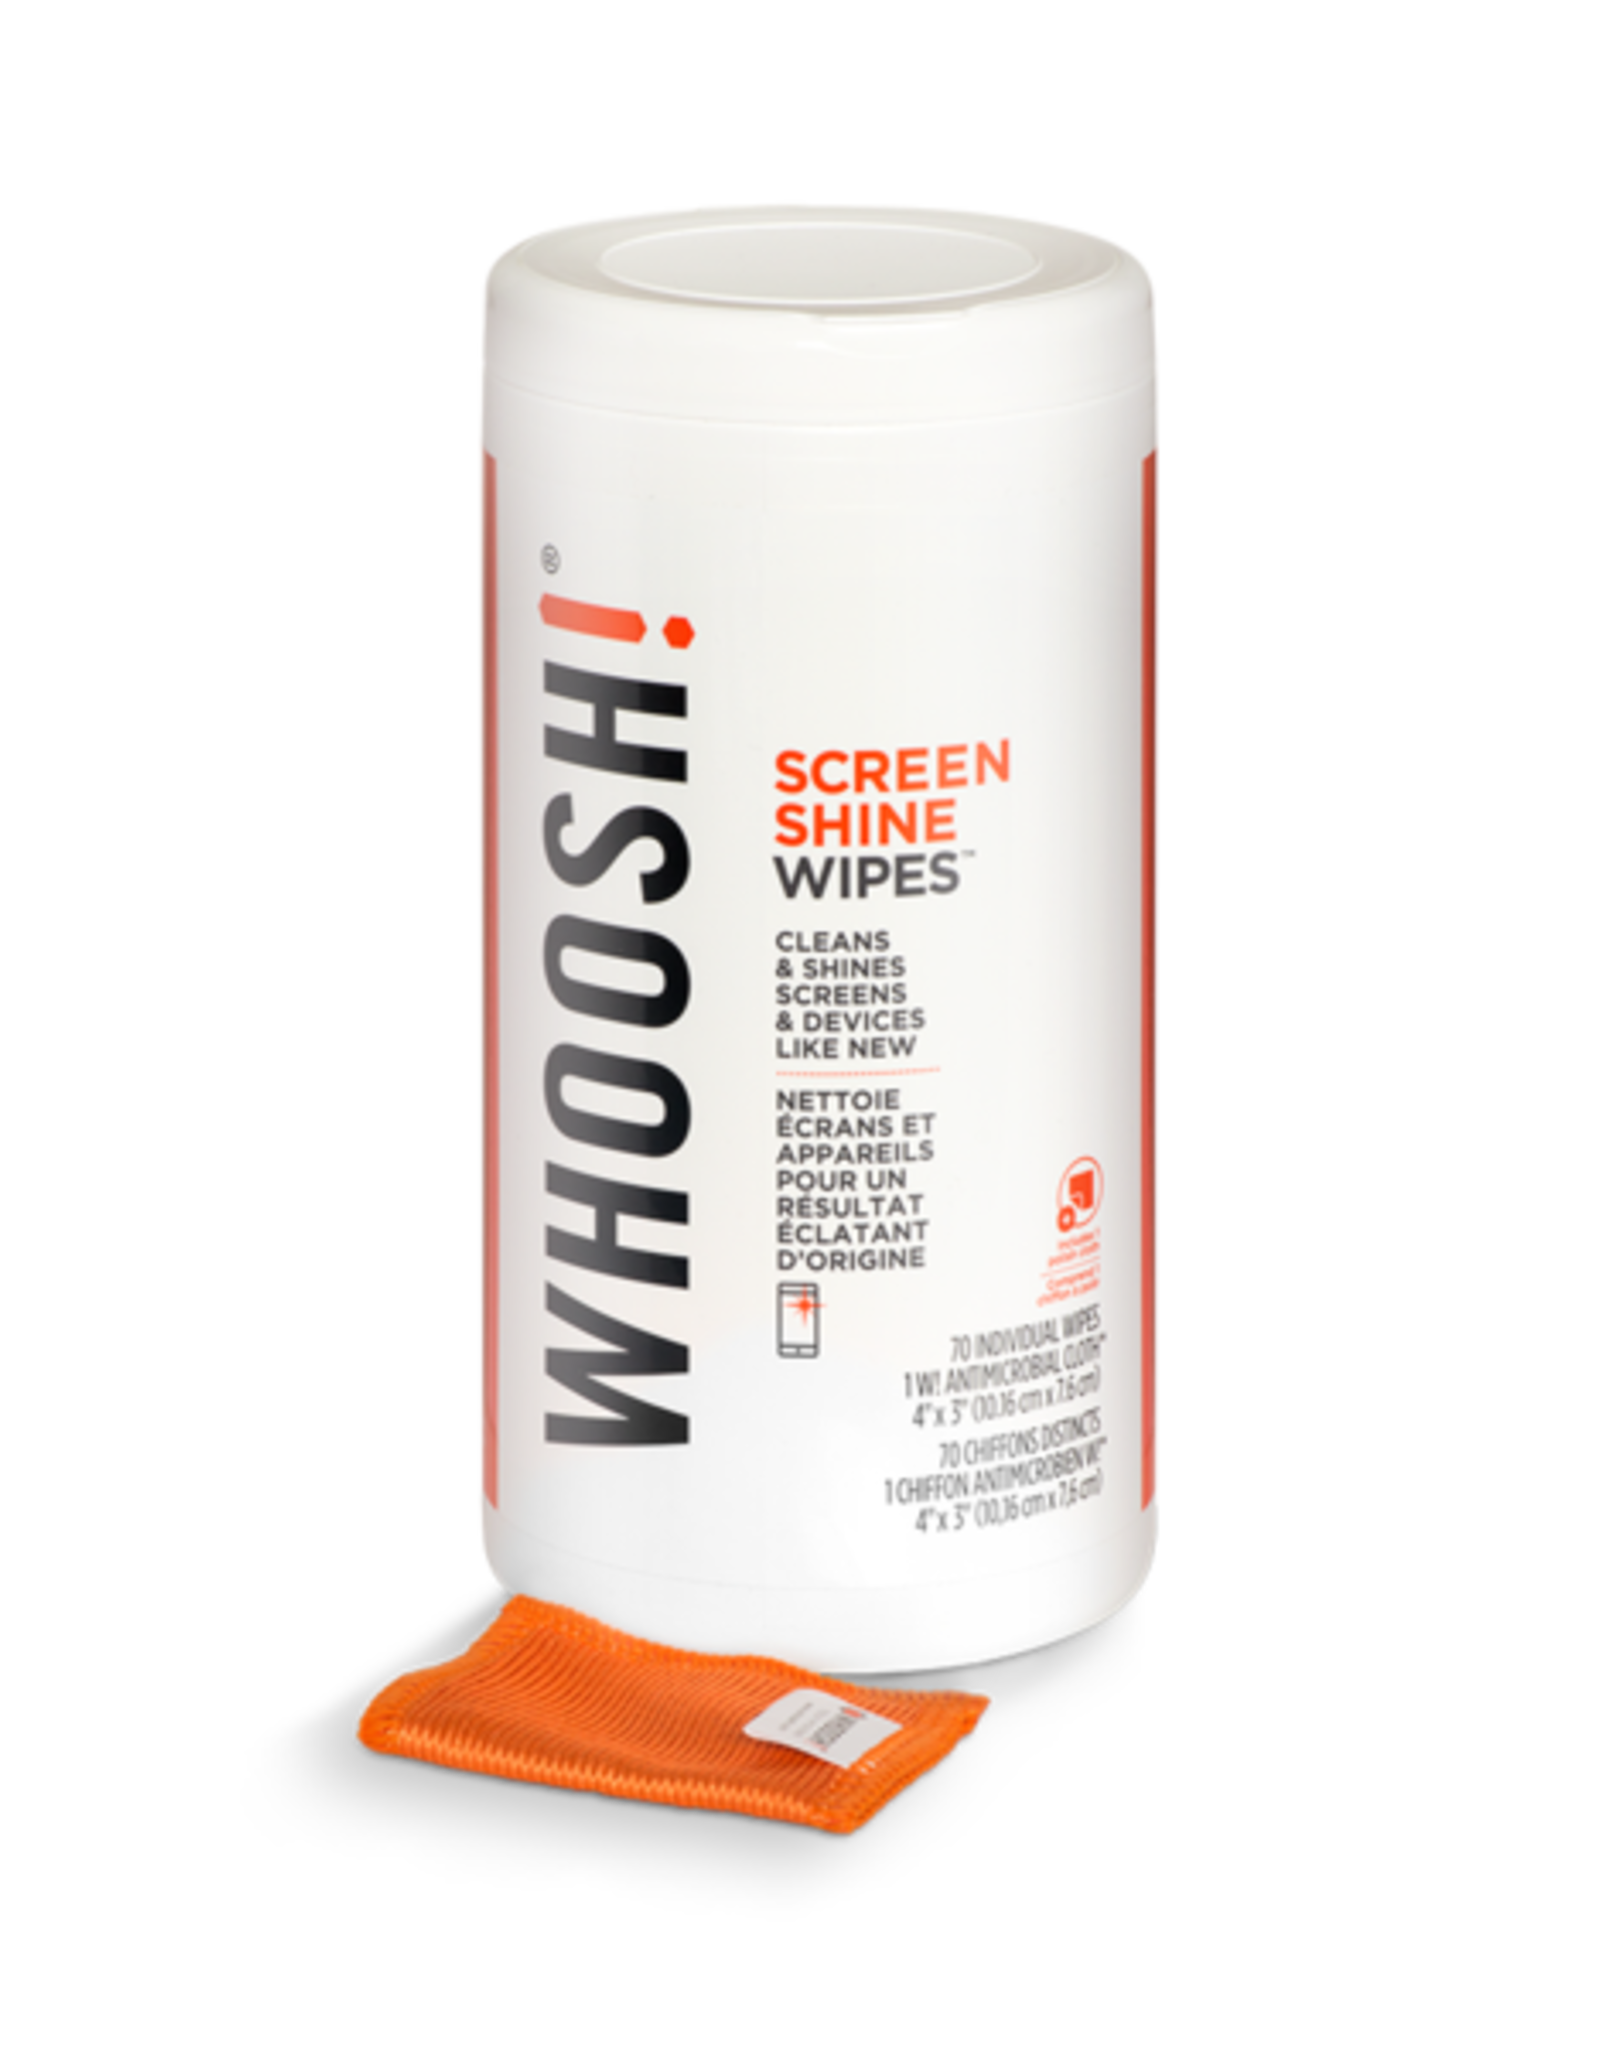 Whoosh Whoosh! Screen Shine Wipes 70 Wipes Canister + Cloth 47980